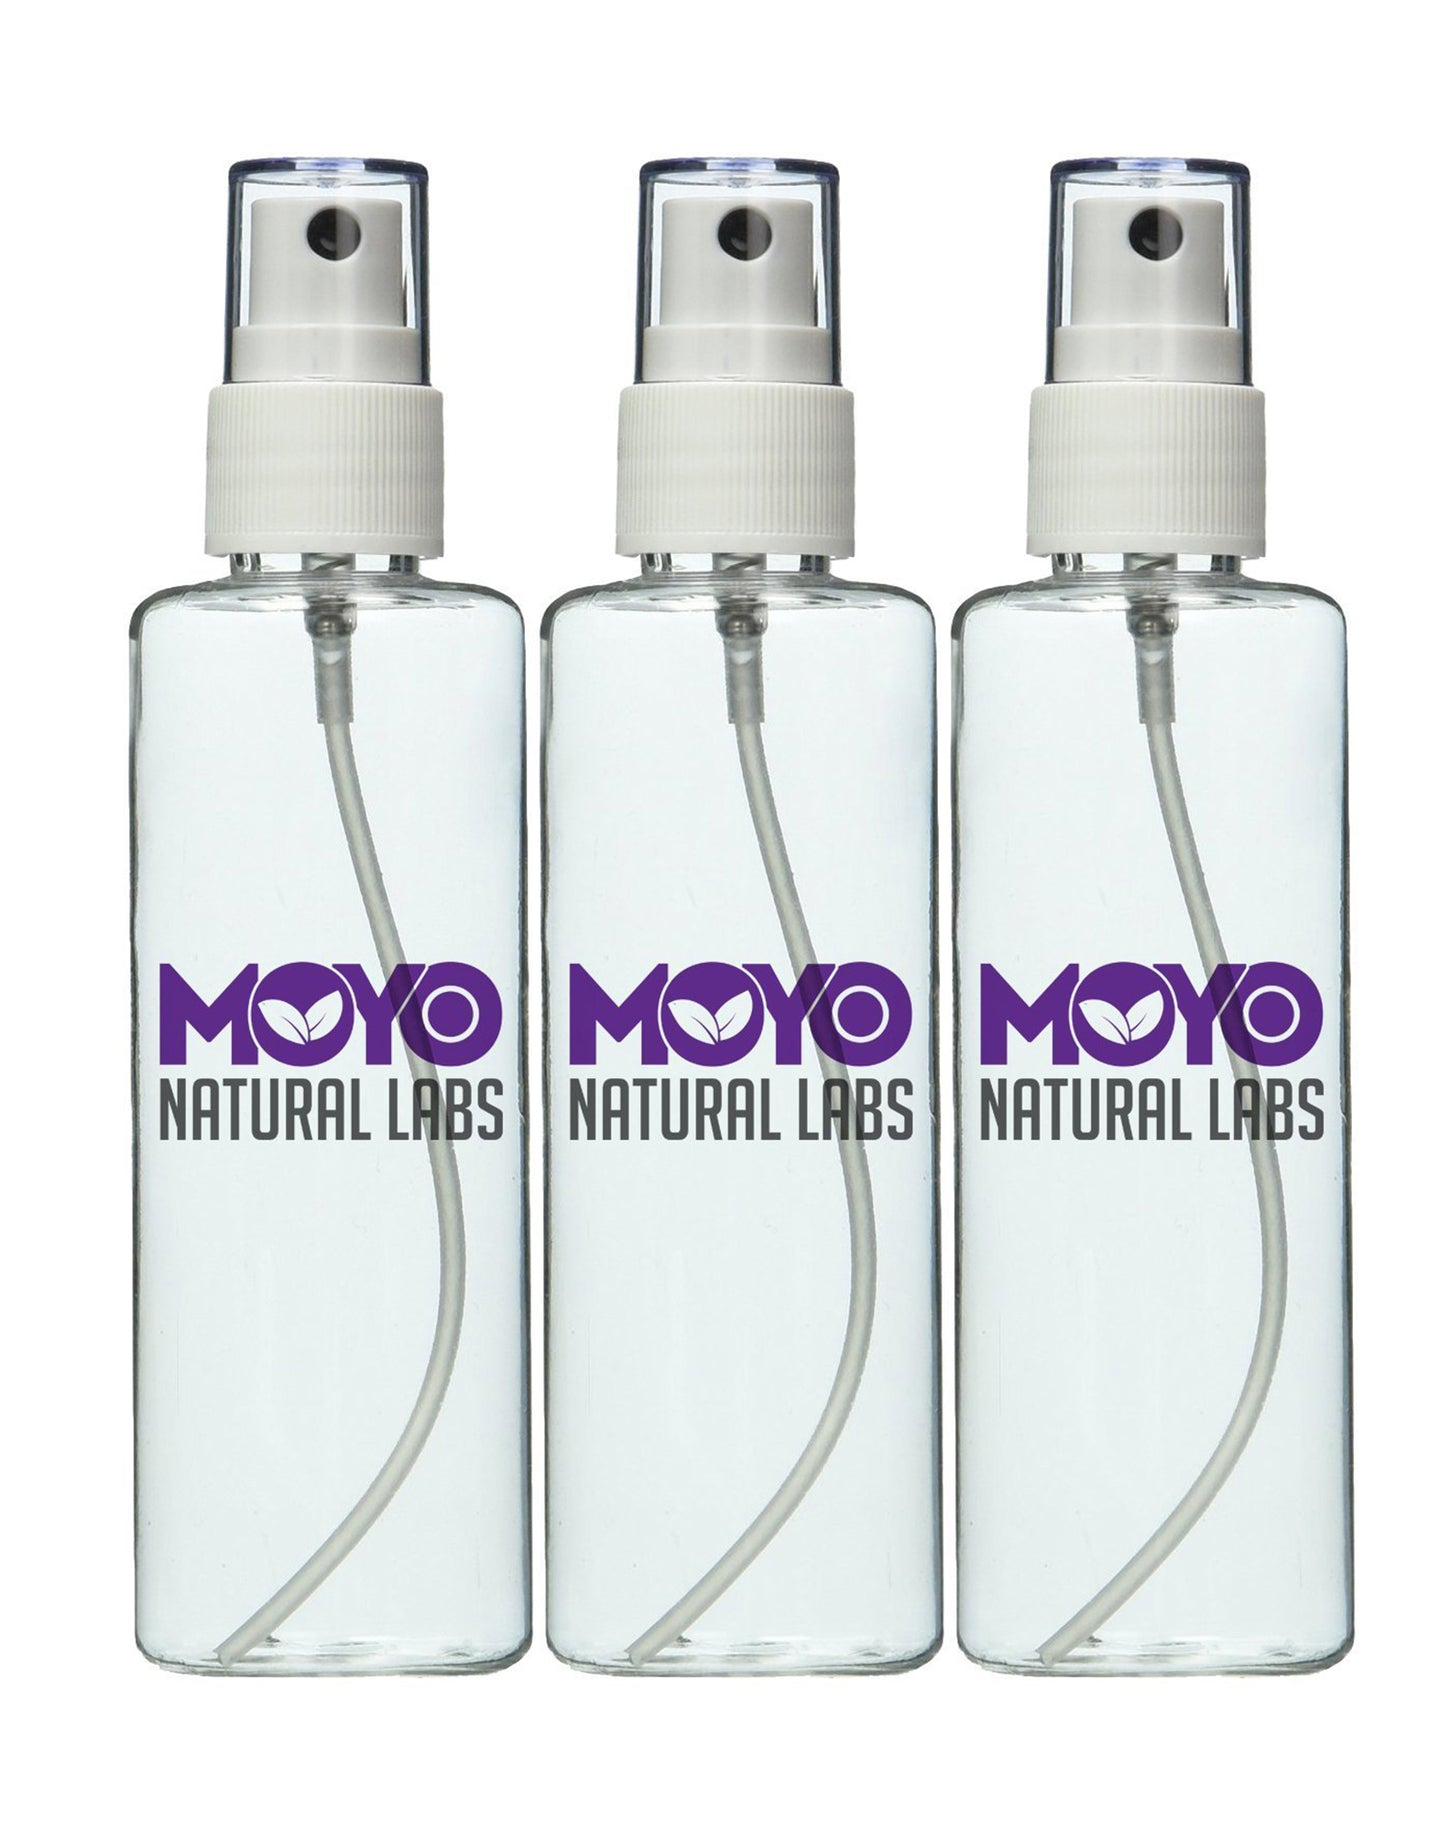 MoYo Natural Labs Large Durable Essential Oil mist bottle Travel Bottle 3.4 oz Misting Spray Bottle with Elegant Silver Tone Cap TSA Approved and BPA Free Made in USA Qty 3